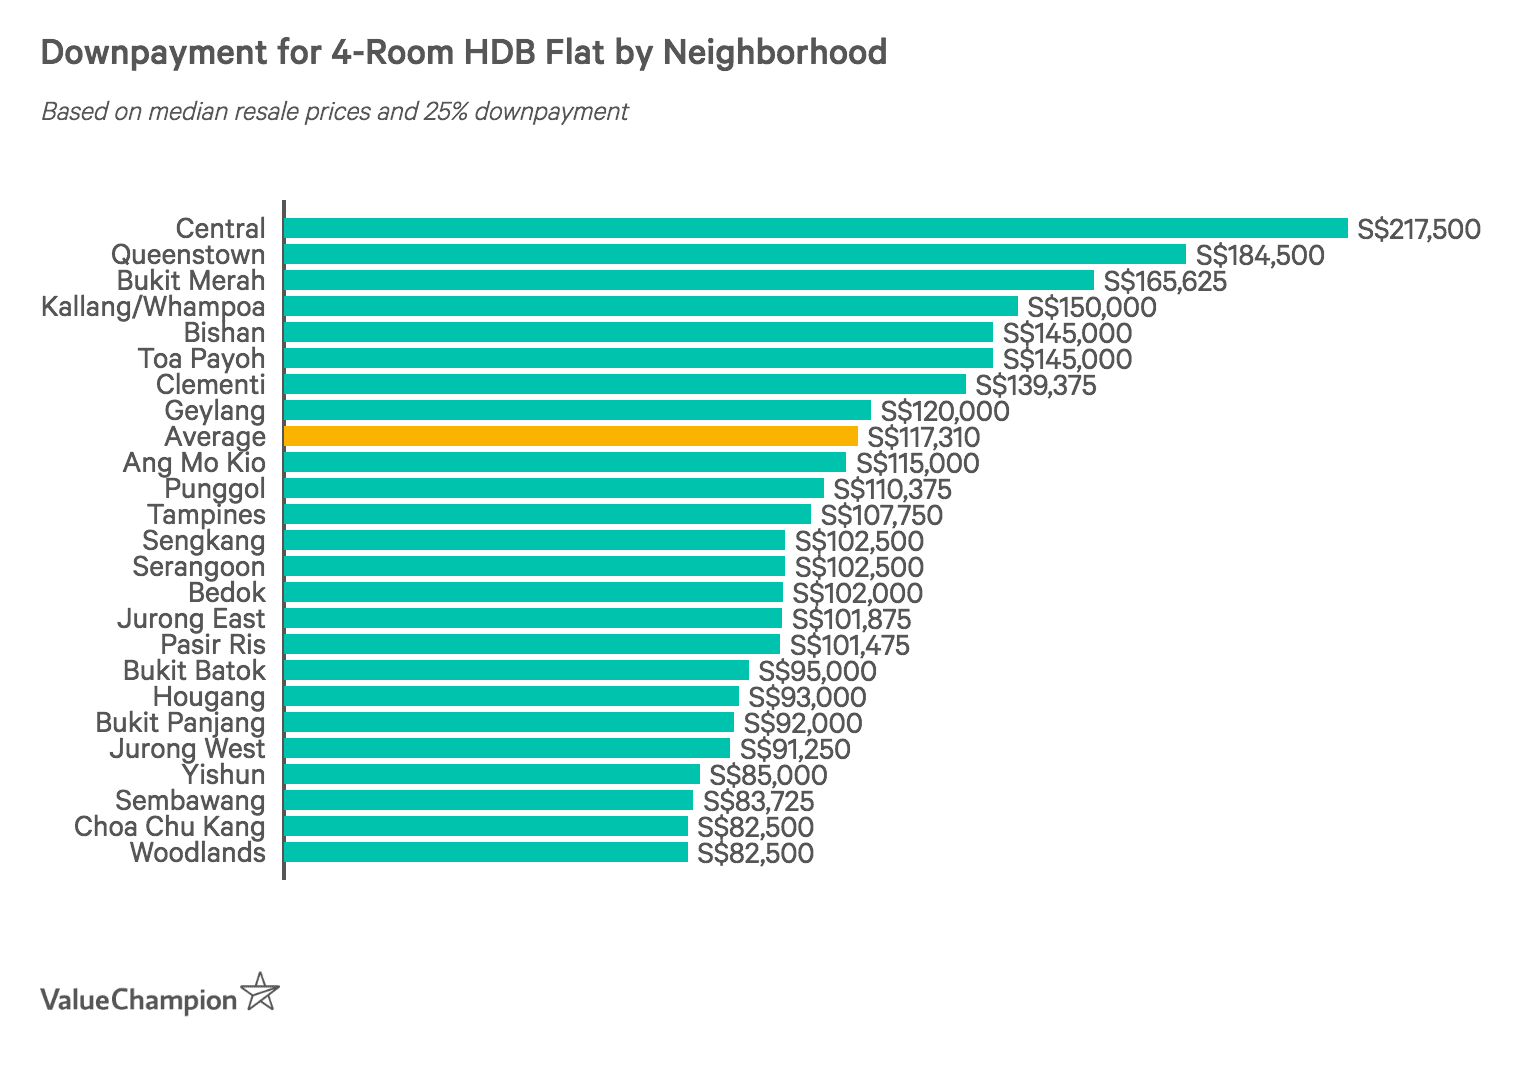 Downpayment for a 4-Room HDB Flat by Neighbourhood